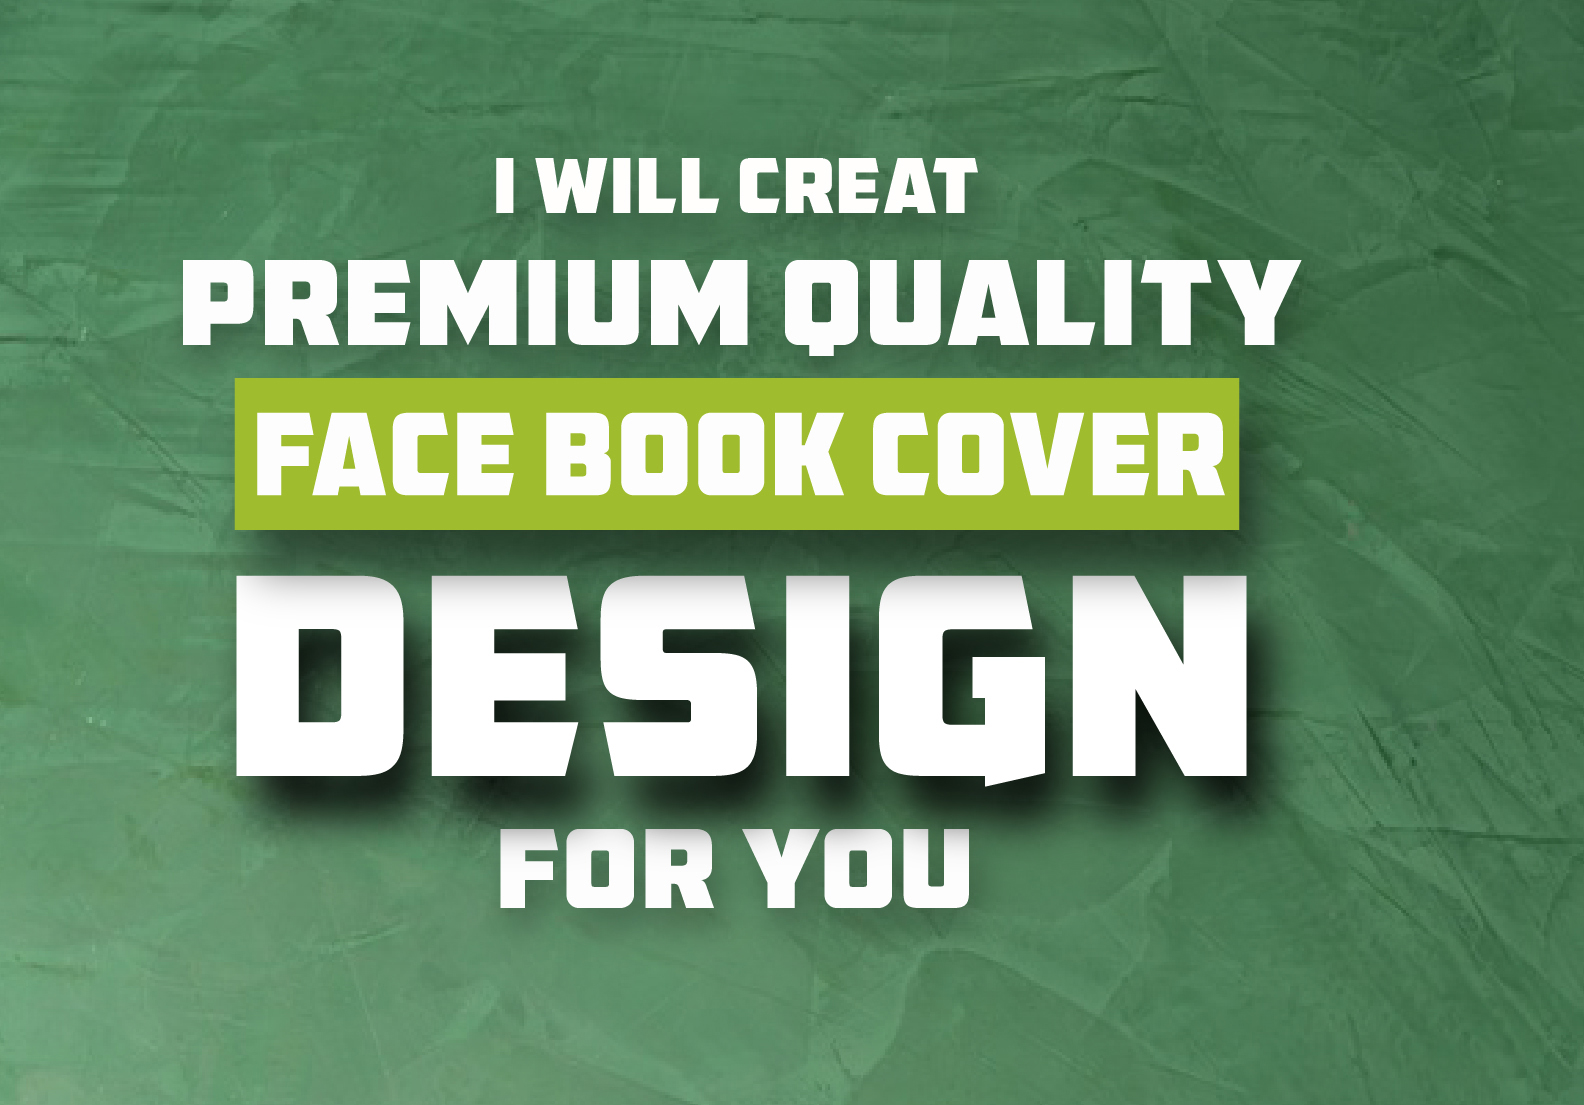 I will create awesome social media post designs face book or Instagram.